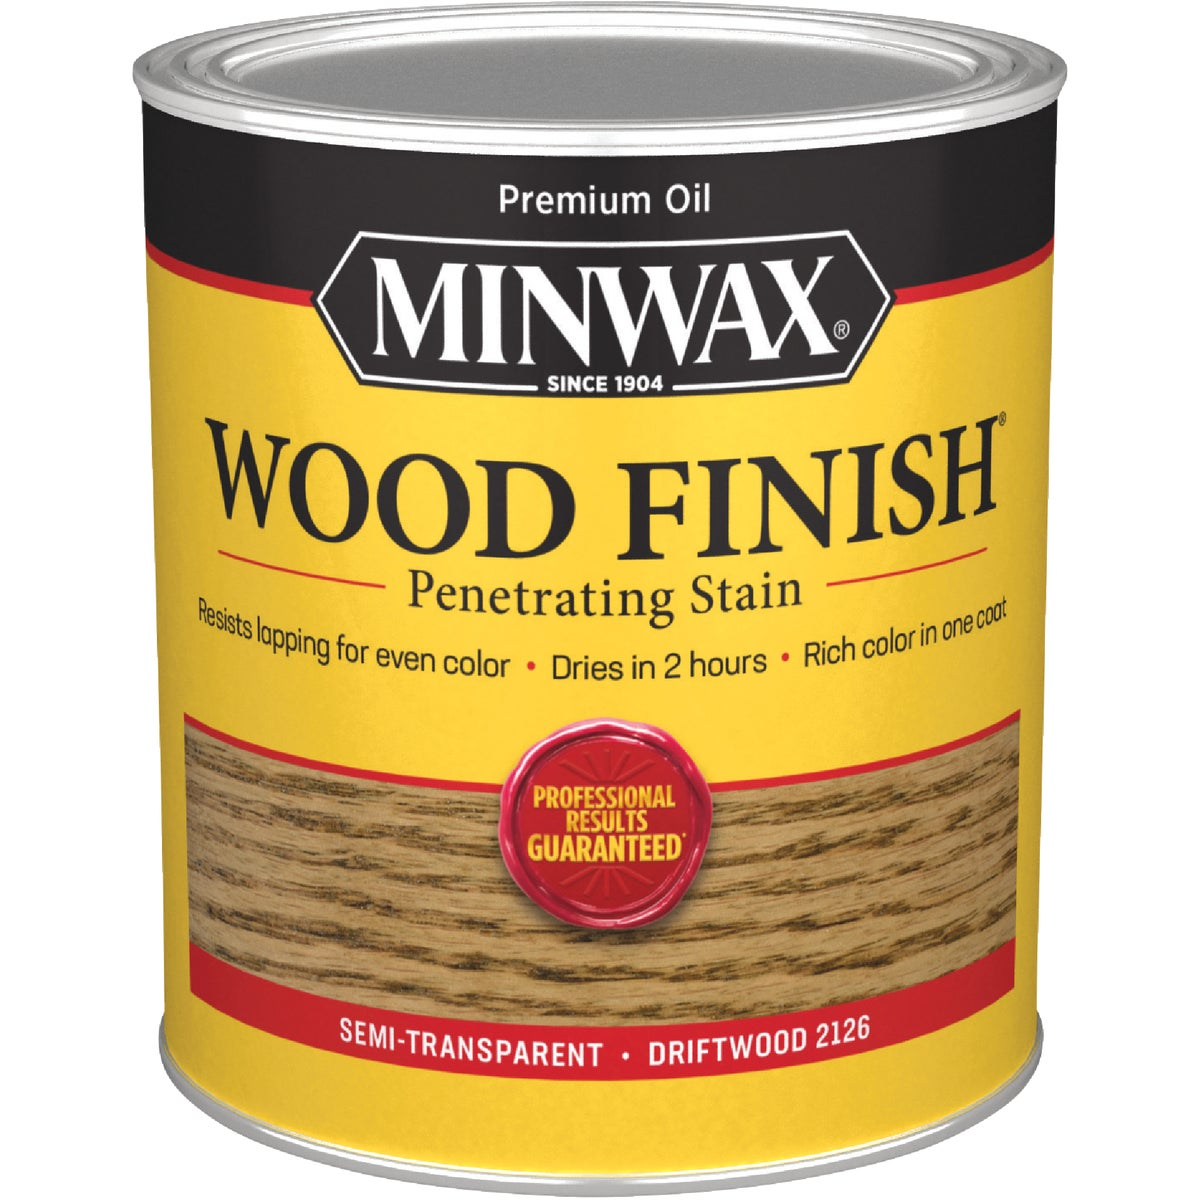 DRIFTWOOD WOOD STAIN - 70011 by Minwax Company